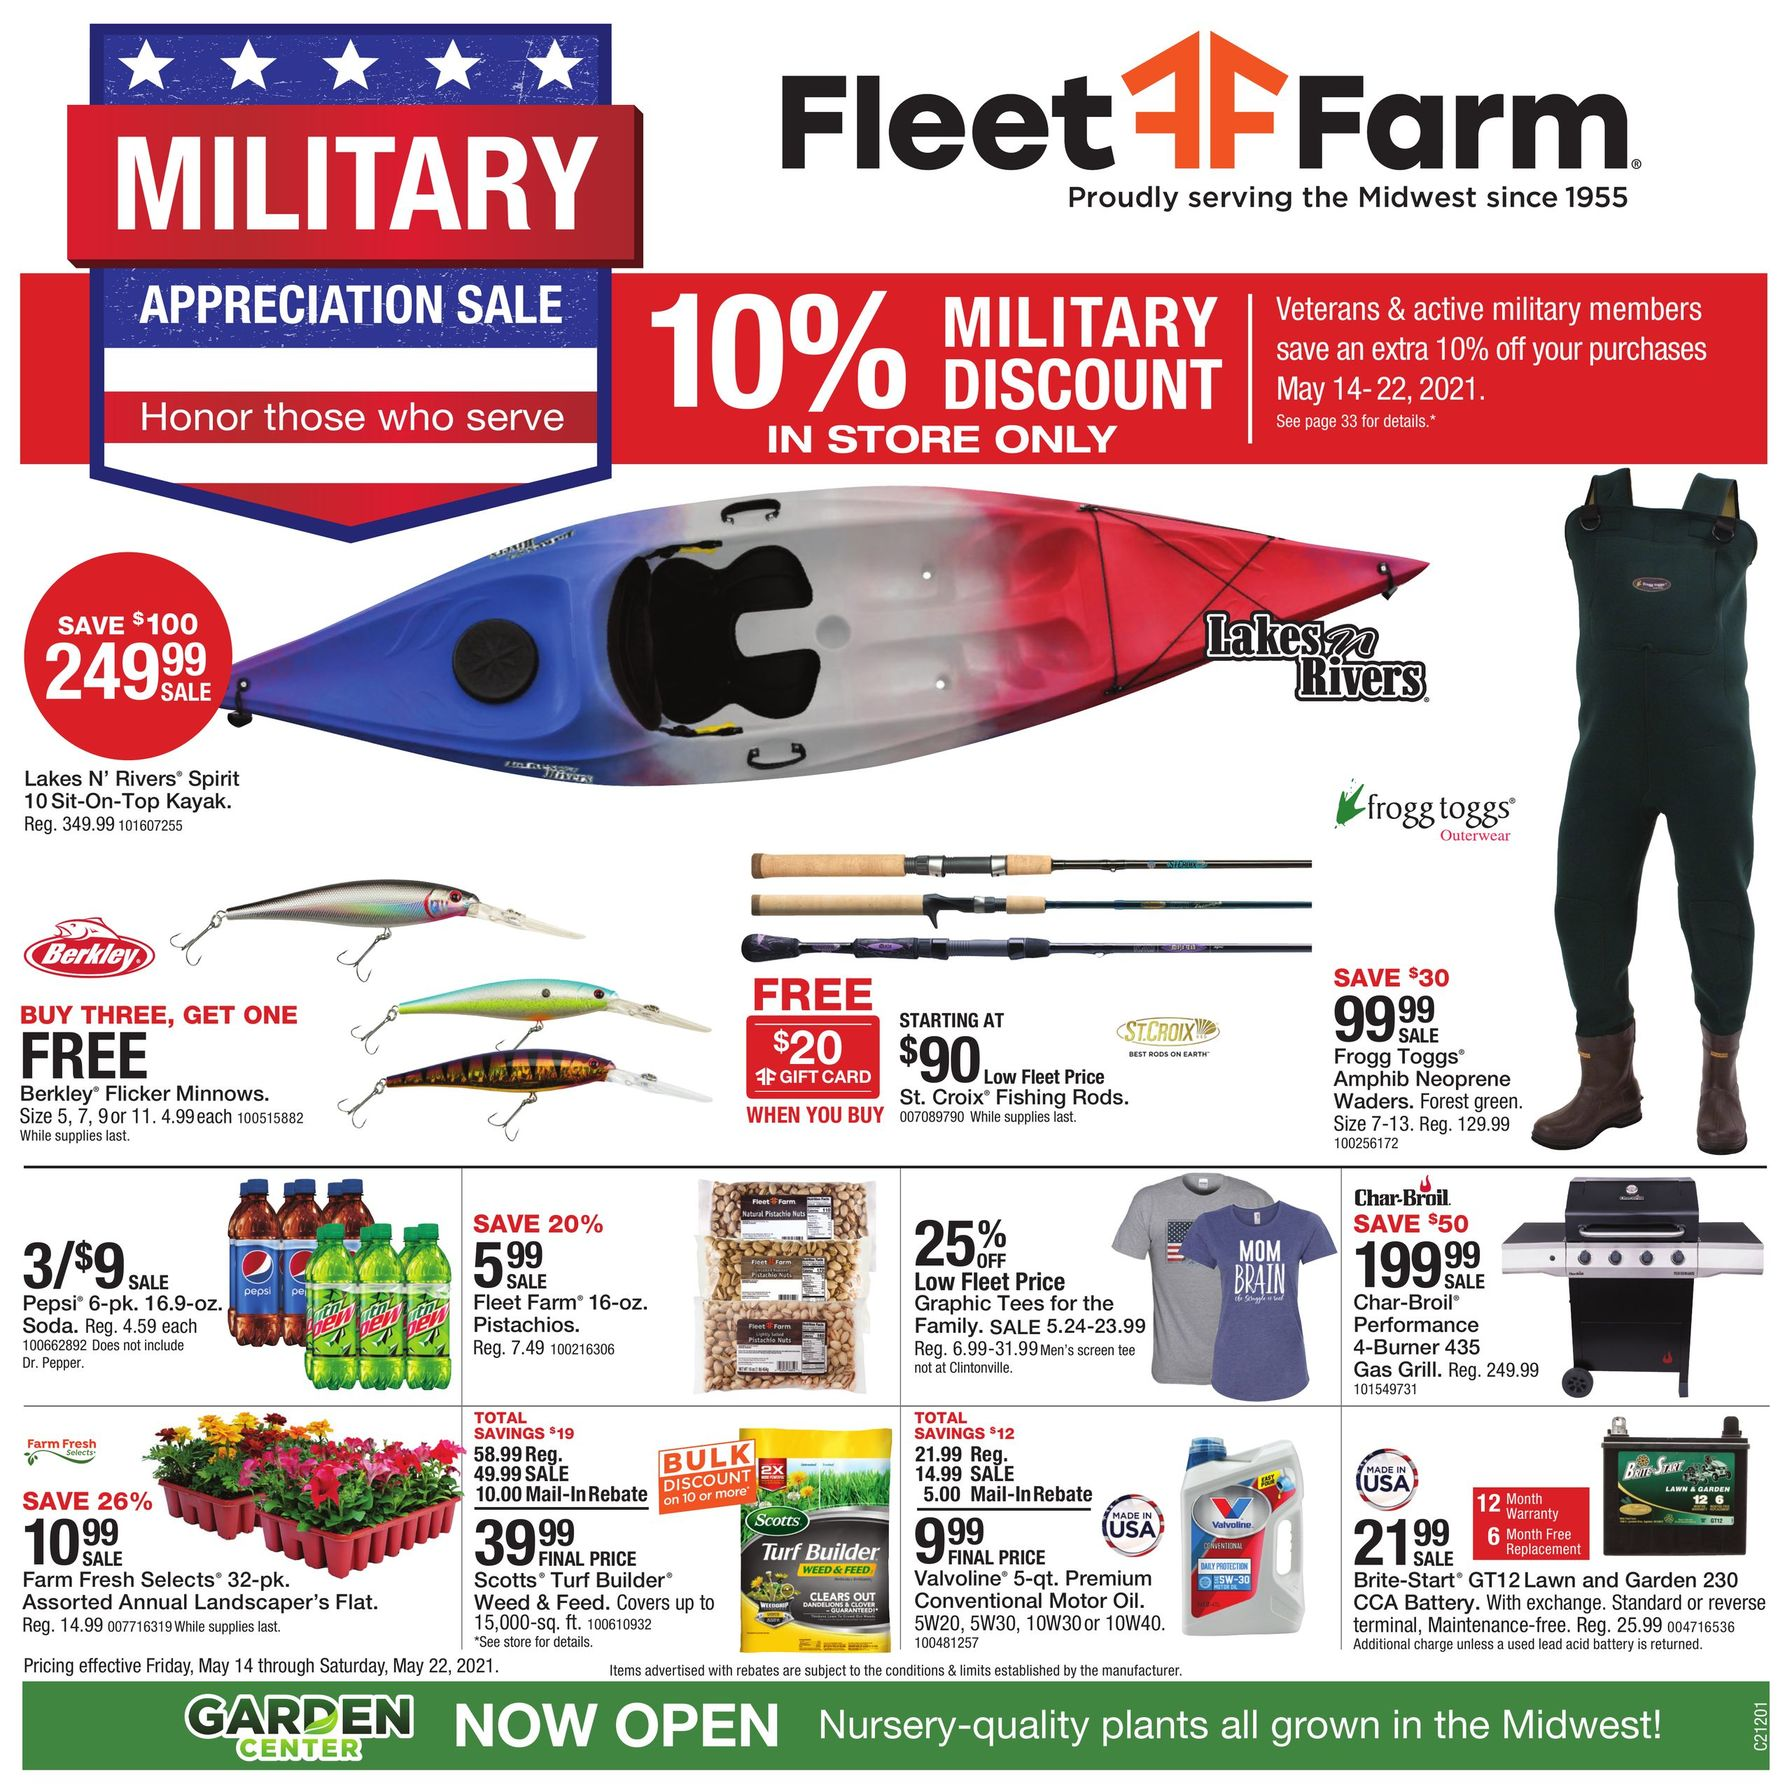 Fleet Farm Weekly Ad May 14 - May 22, 2021.